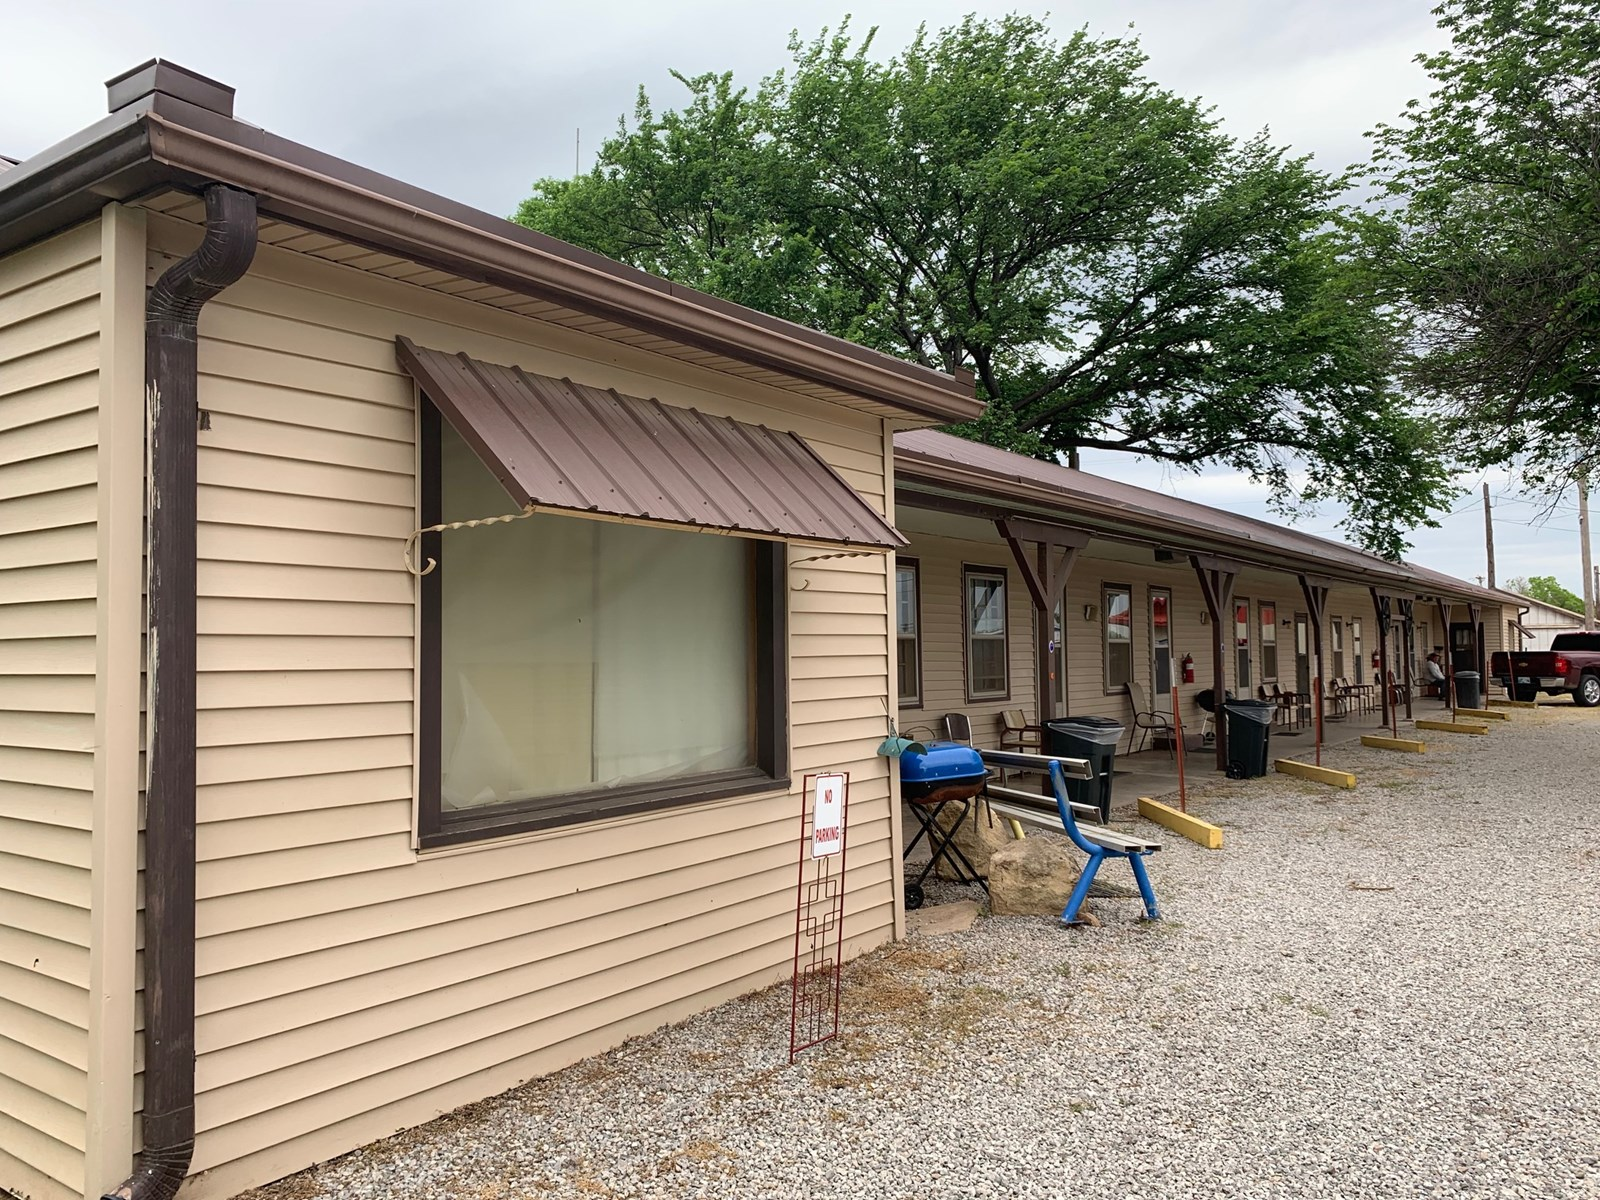 Turnkey Motel & Laundromat For Sale in Grant County, OK